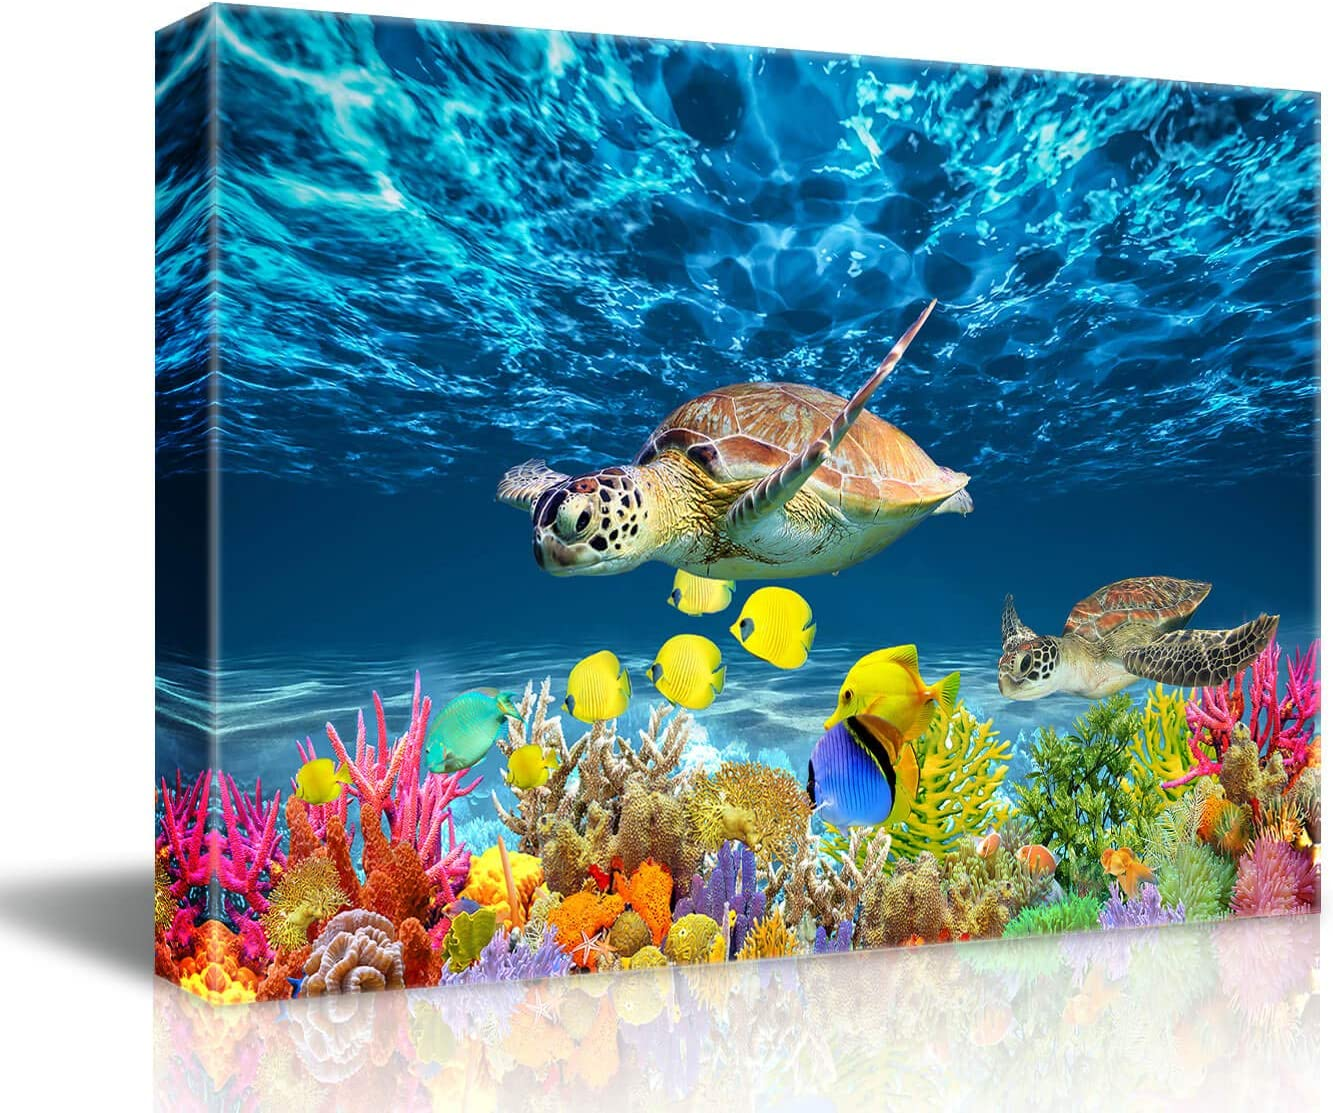 Bathroom Canvas Wall Art Kitchen Wall Decoration Modern Sea Turtle Wall Decor for Dining Room Colorful Fish Coral Beach Theme Pictures for Bathroom Framed Navy Seascape Nautical Wall Decor Size 12x16